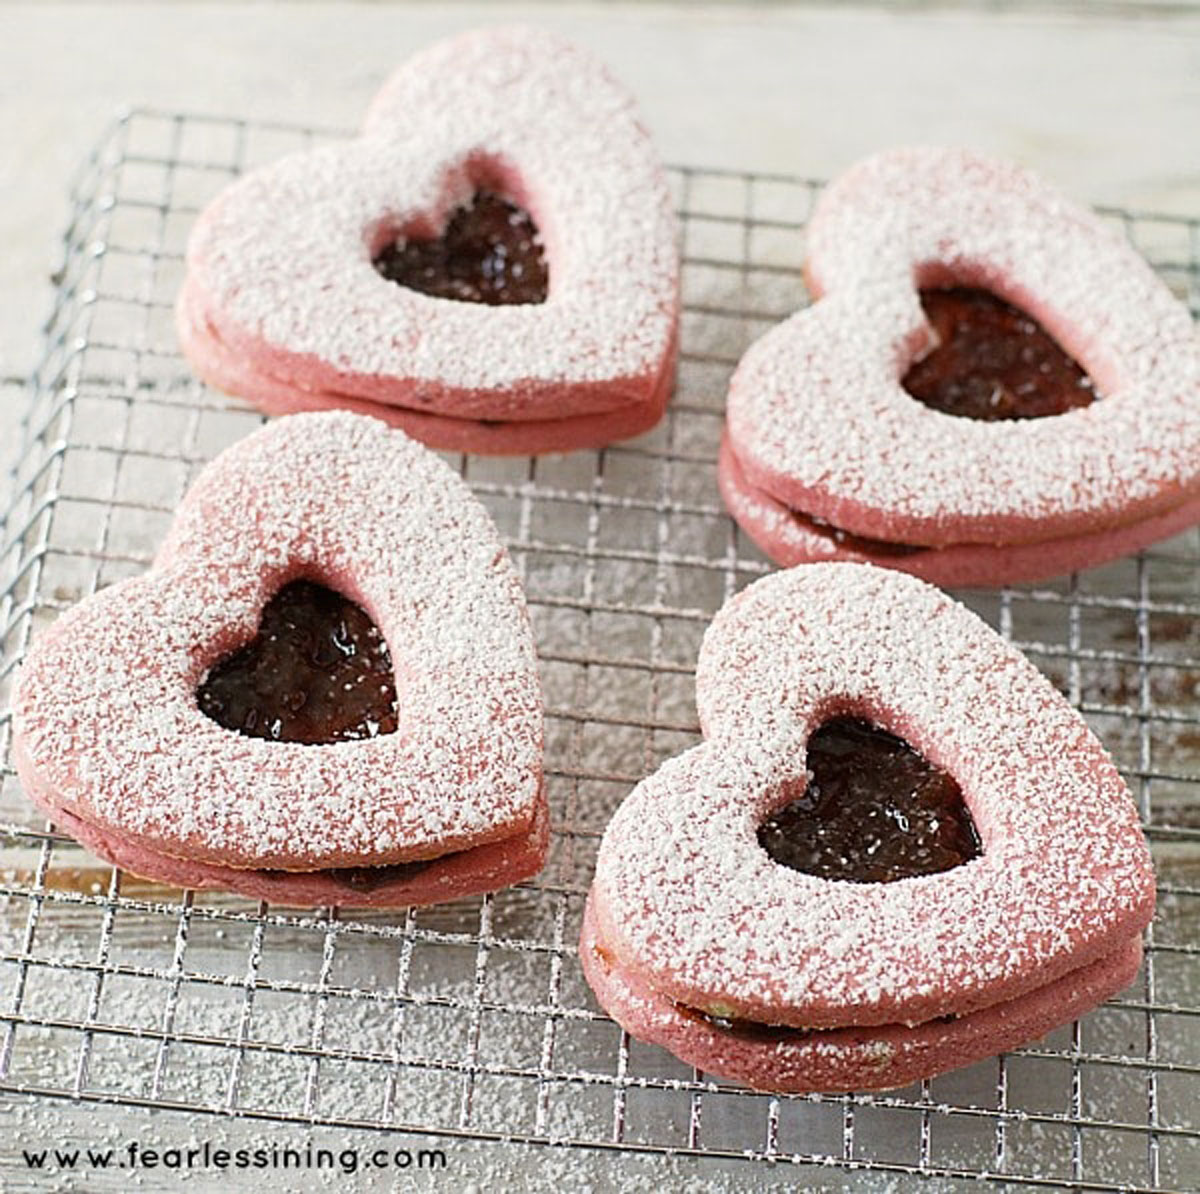 powdered sugared dusted linzer cookies on a rack